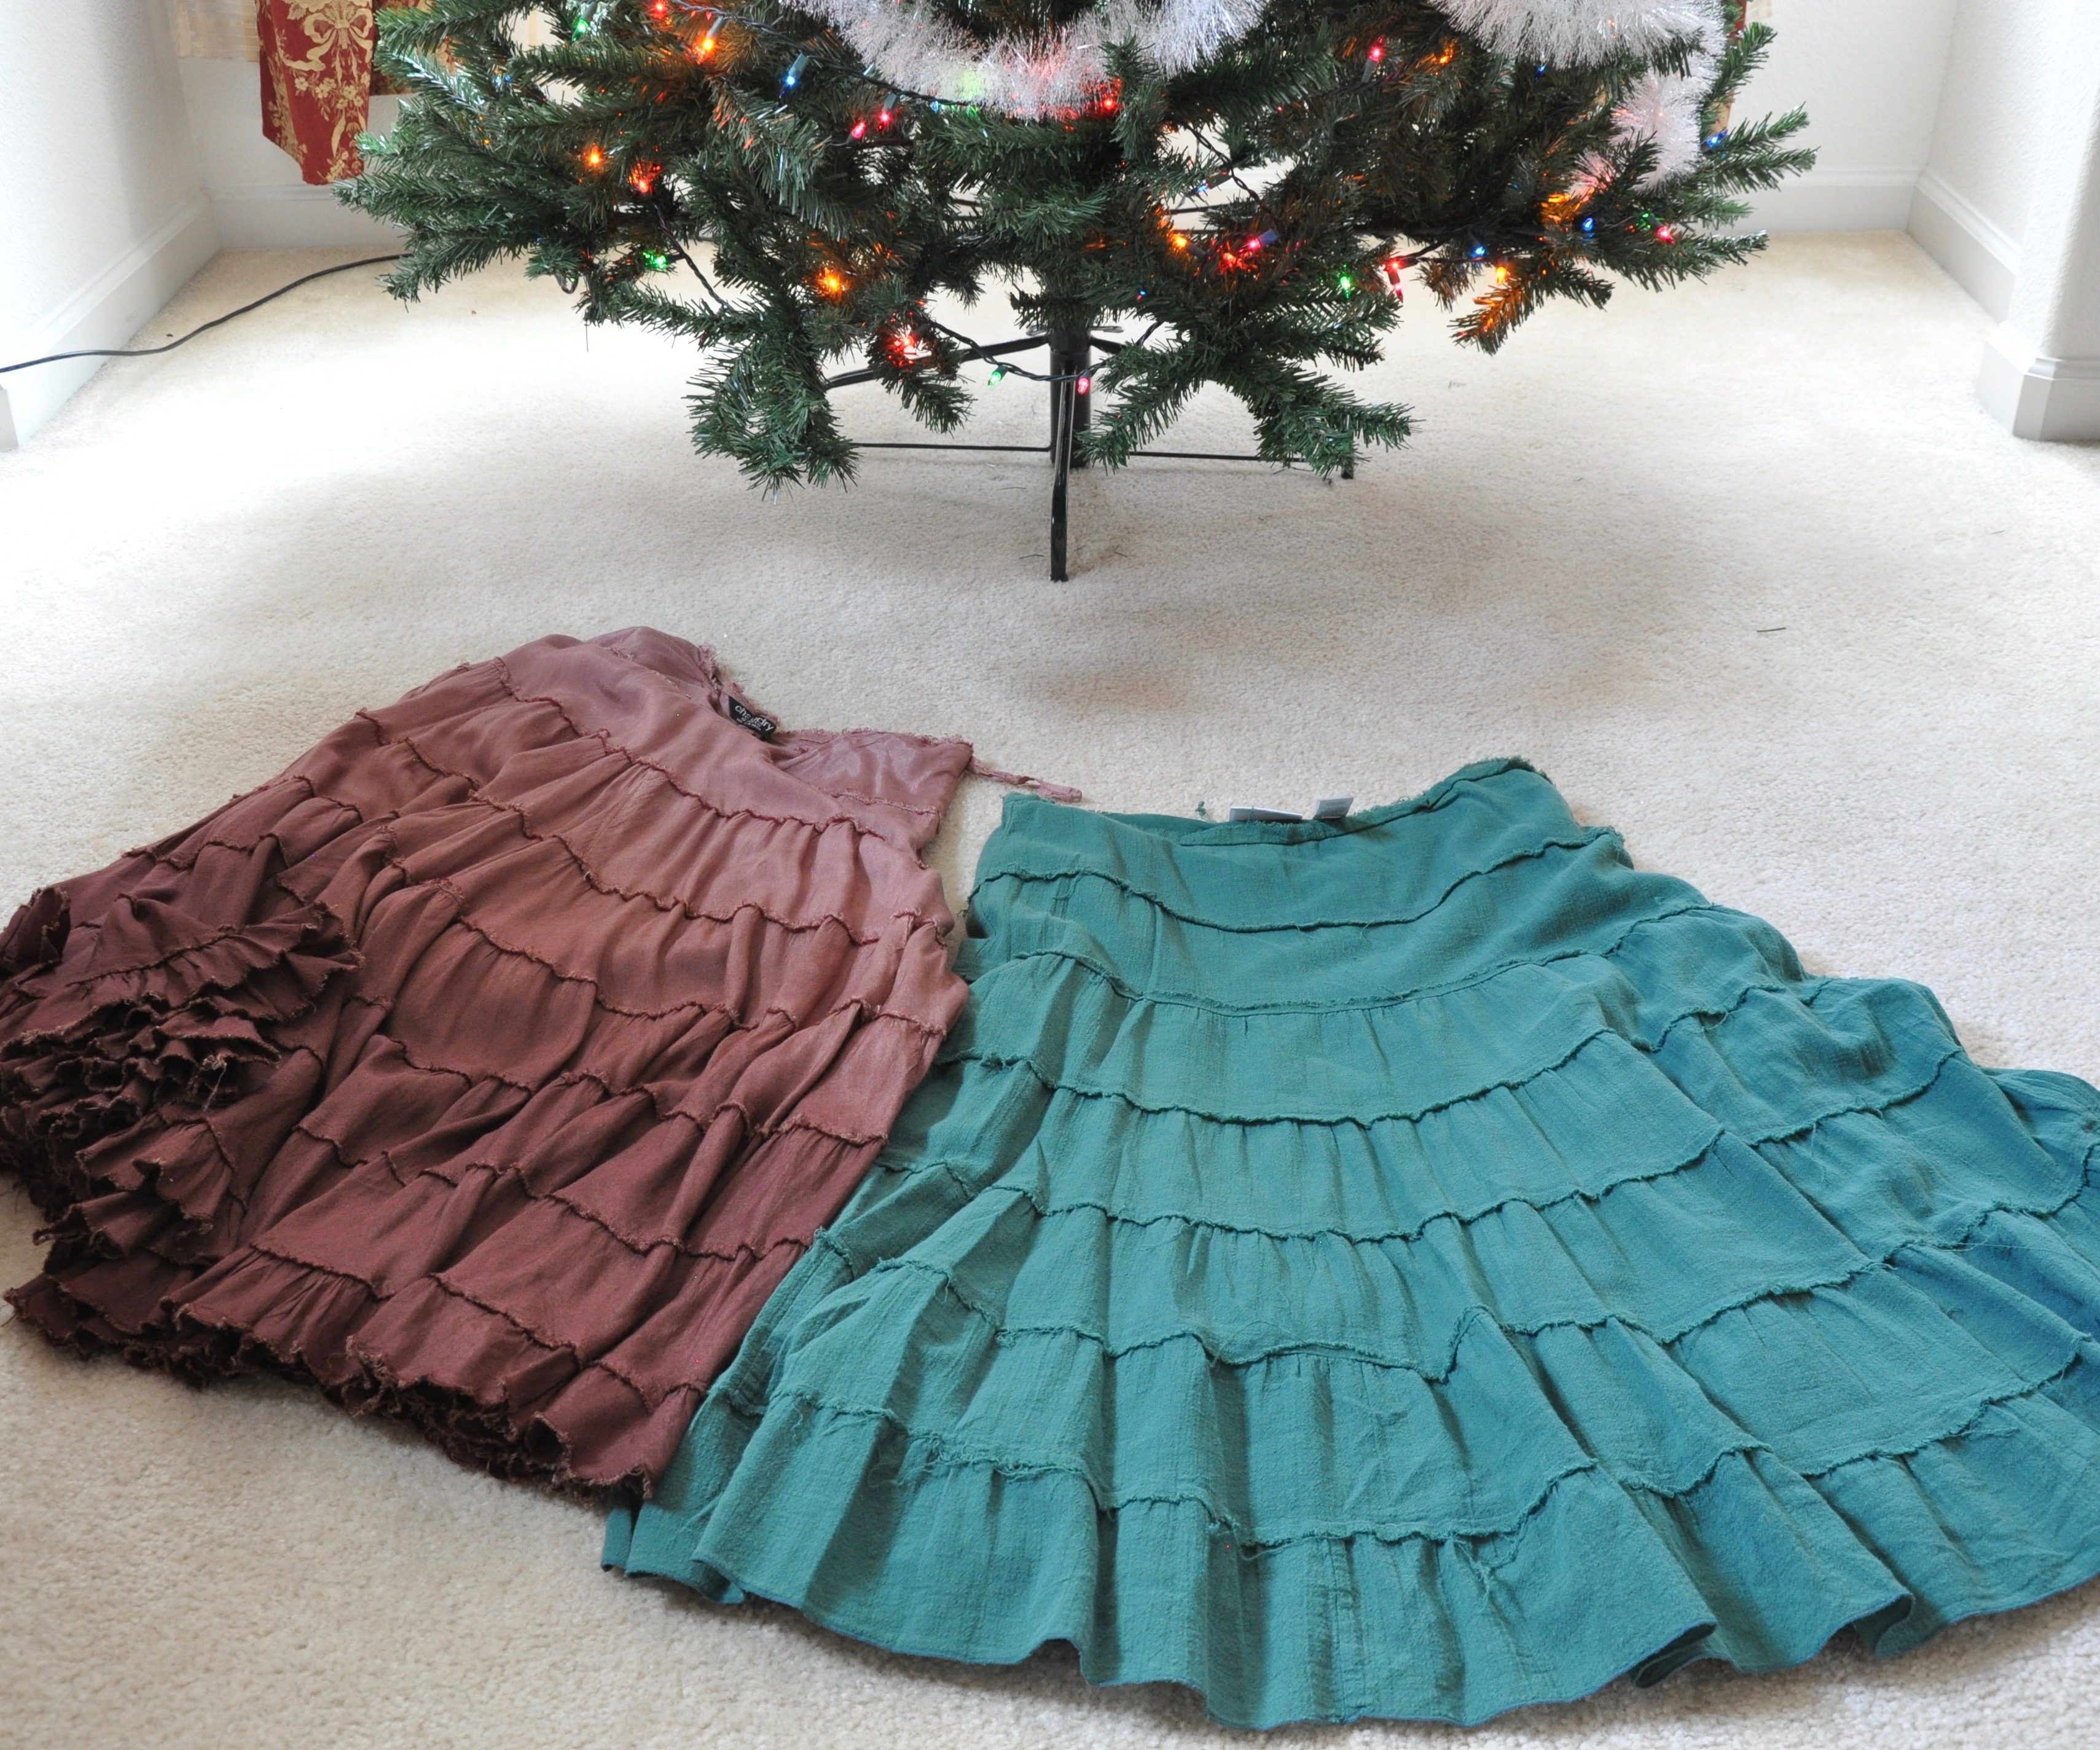 Easy Alternative Tree Skirts 7 Steps With Pictures Instructables